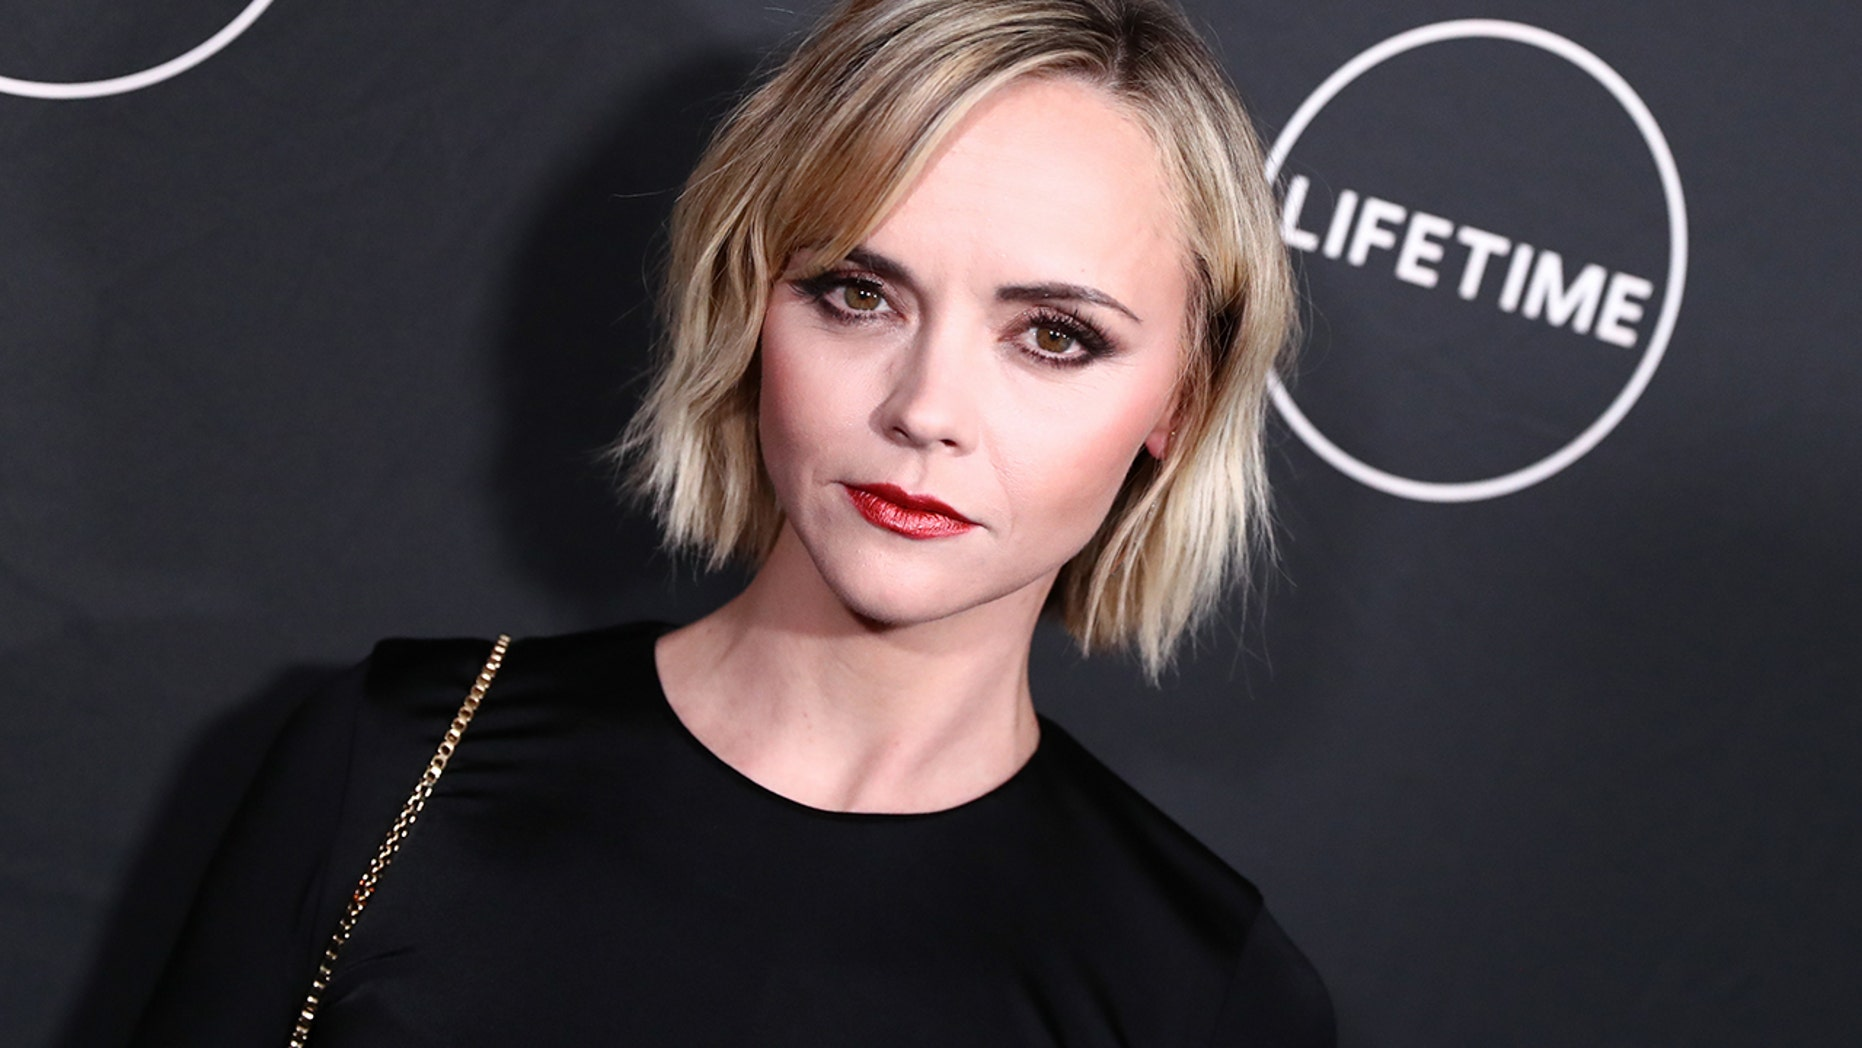 Christina Ricci attends the Lifetime Winter Movies Mixer at the Andaz Hotel on January 09, 2019 in Los Angeles, California.